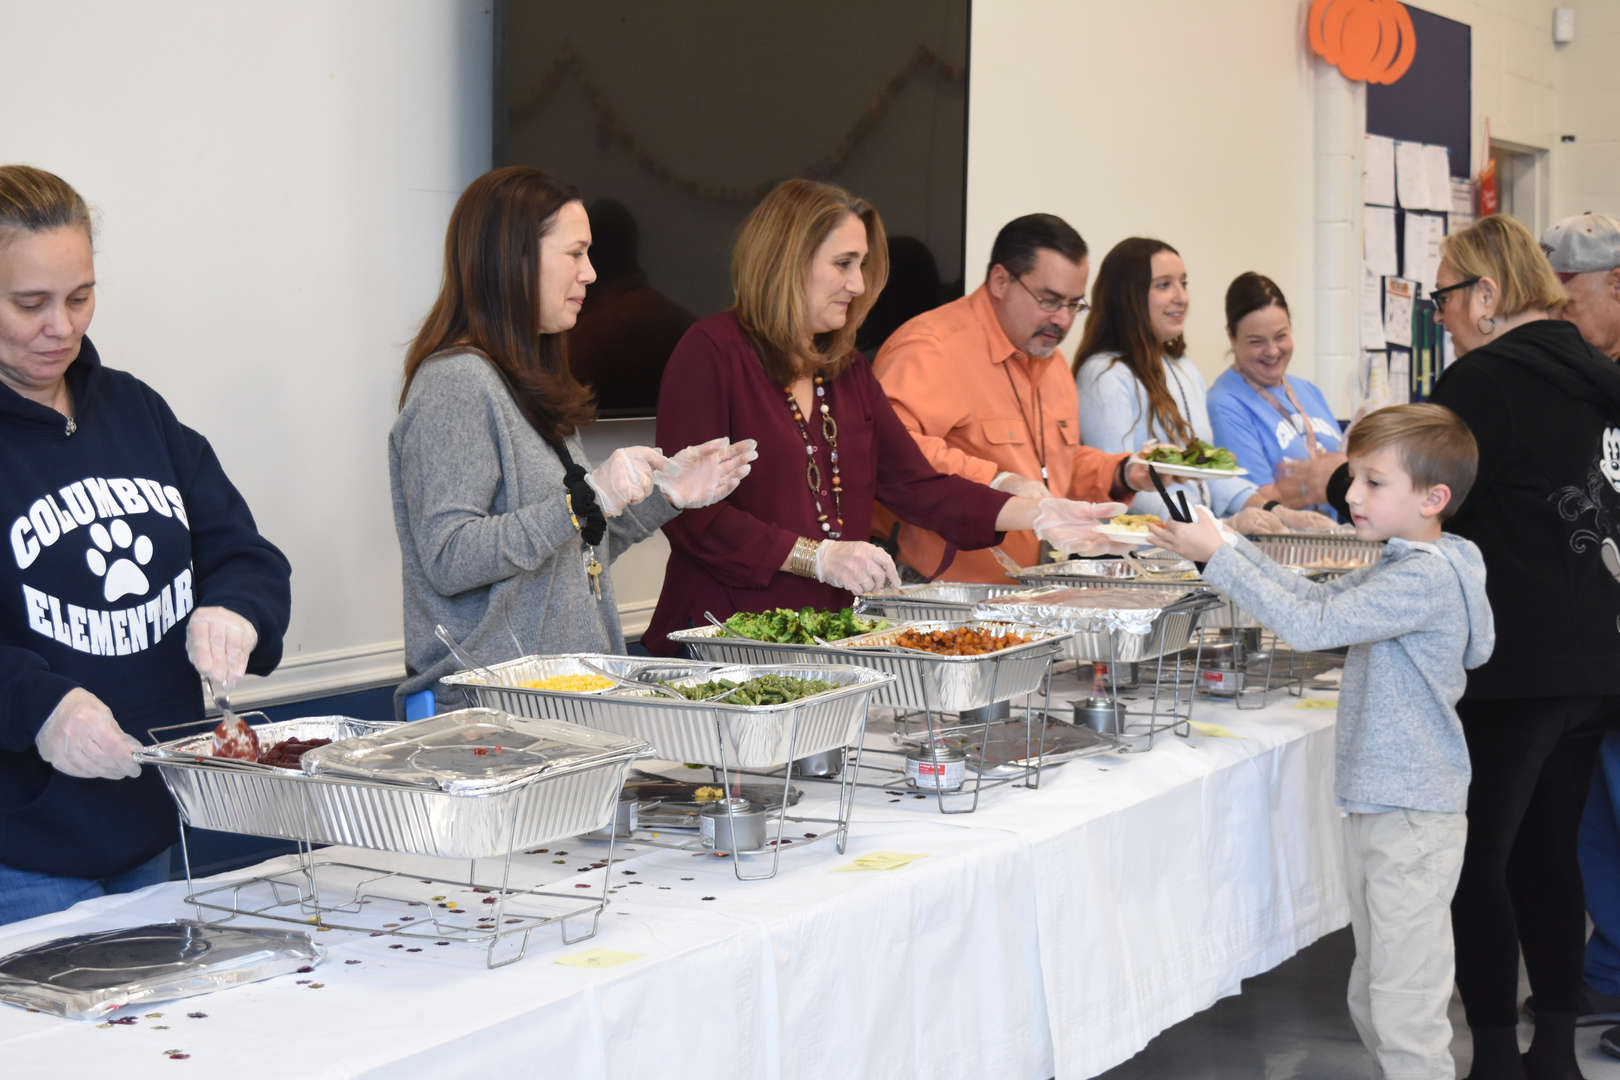 6 adults serve thanksgiving meal from buffet line